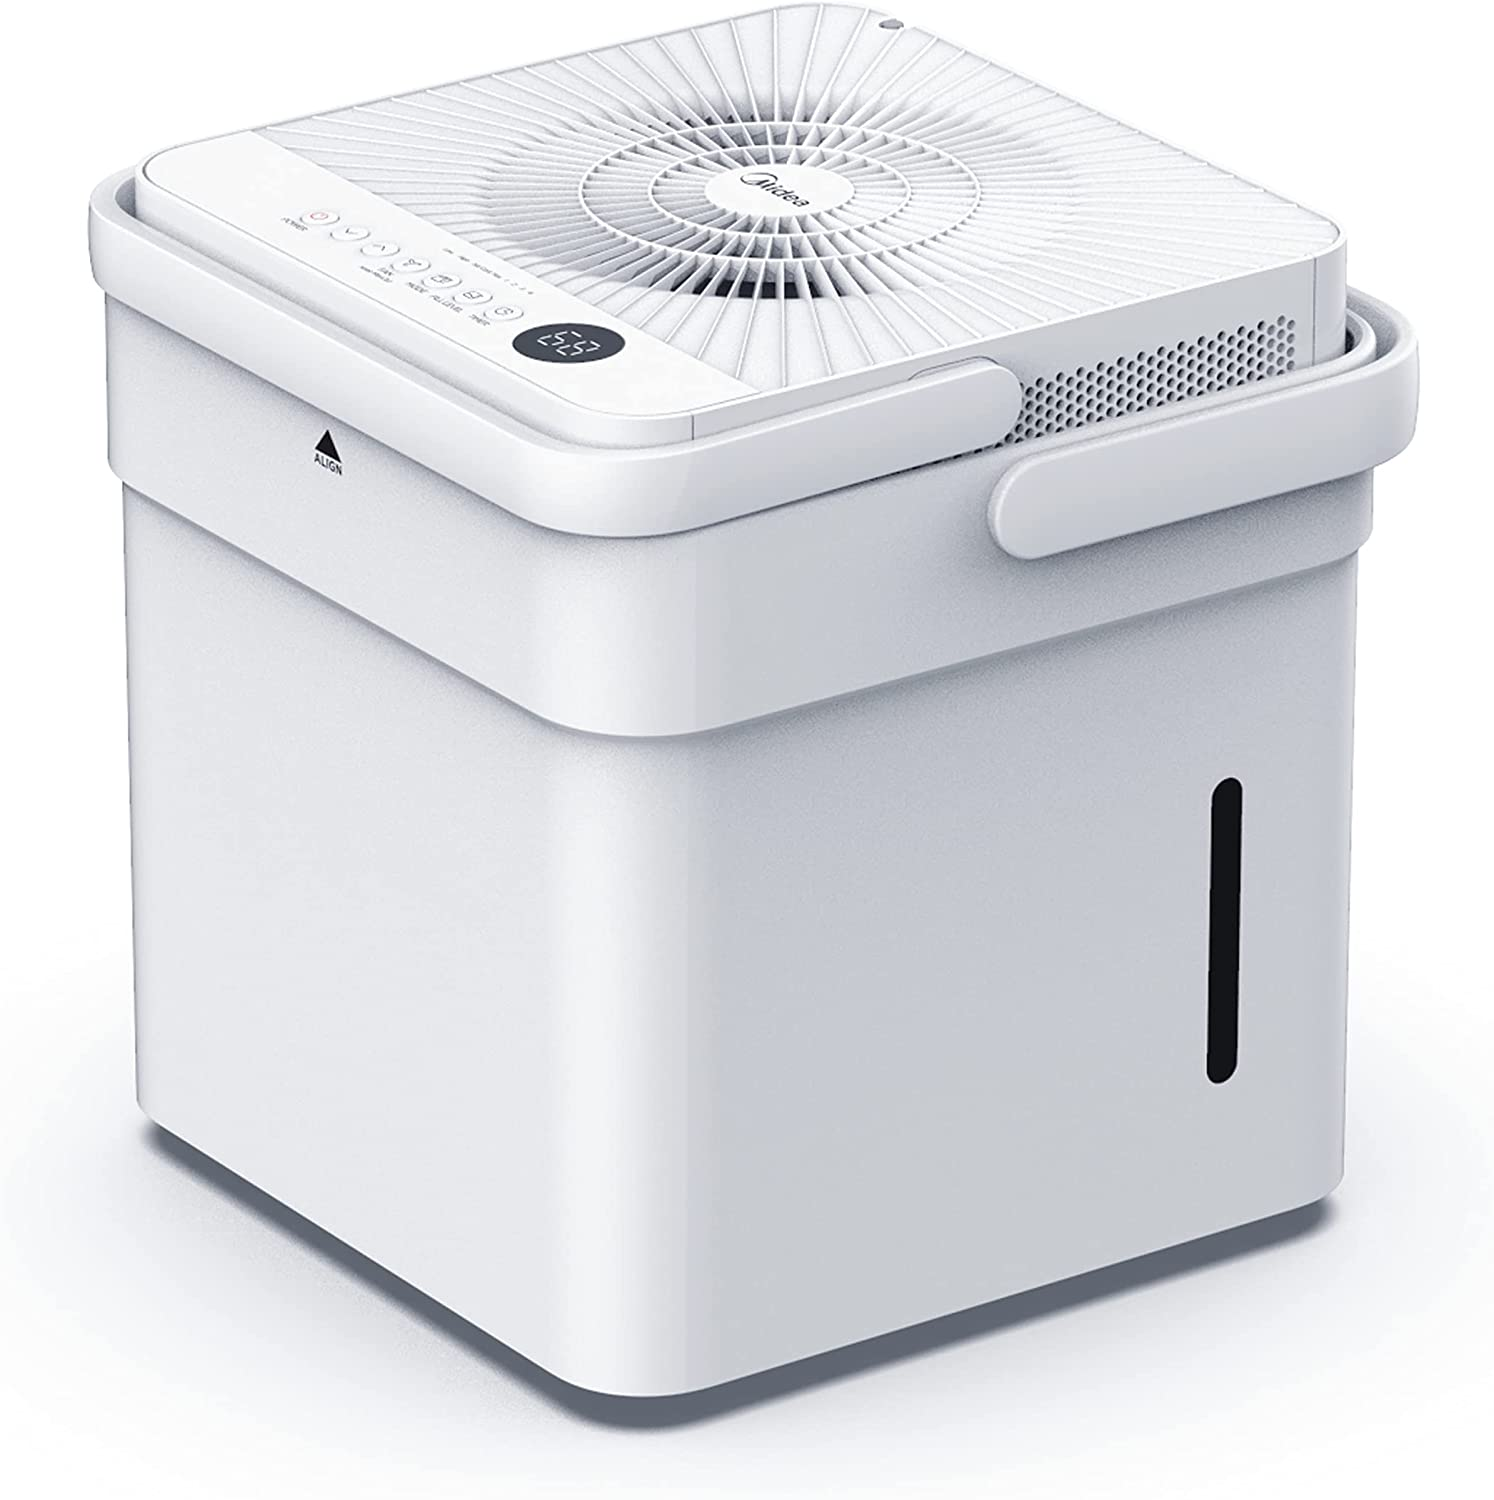 Midea Cube 50 Pint Dehumidifier with Smart Wi-Fi, For Up to 4,500 Sq. Ft.-Compact Size for Home, Basements, Medium-sized Rooms, and Bathrooms, Works with Alexa (White), ENERGY STAR Most Efficient 2021